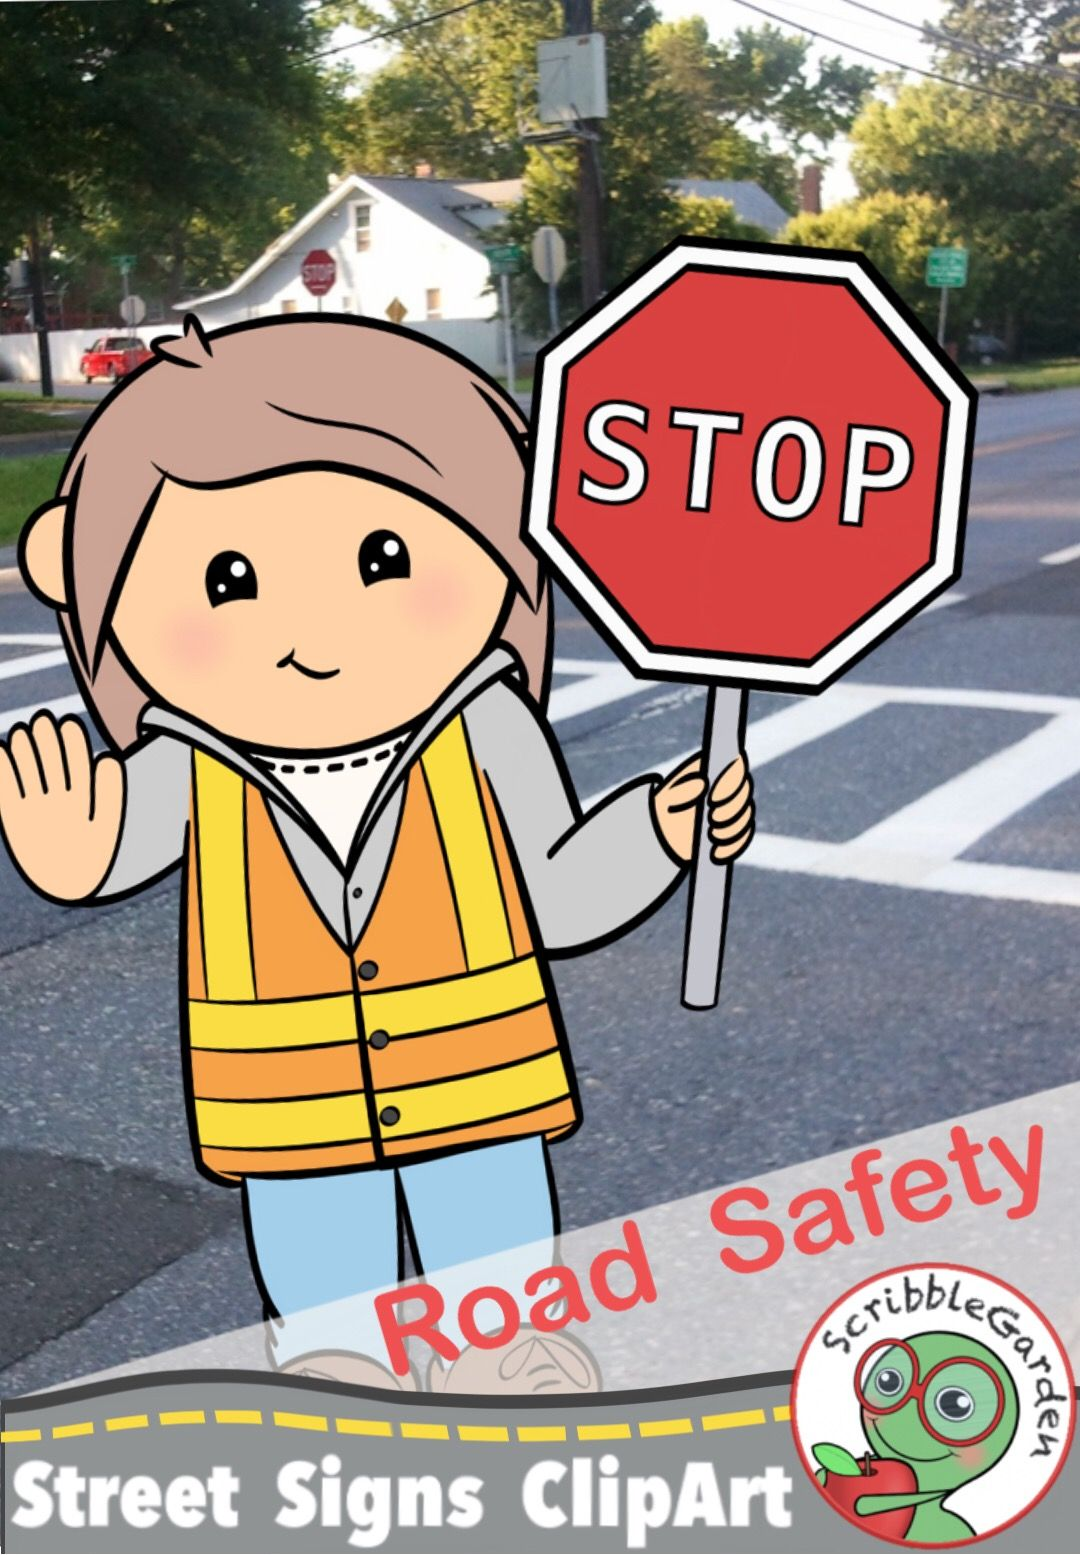 Road Safety: Street Signs ClipArt.